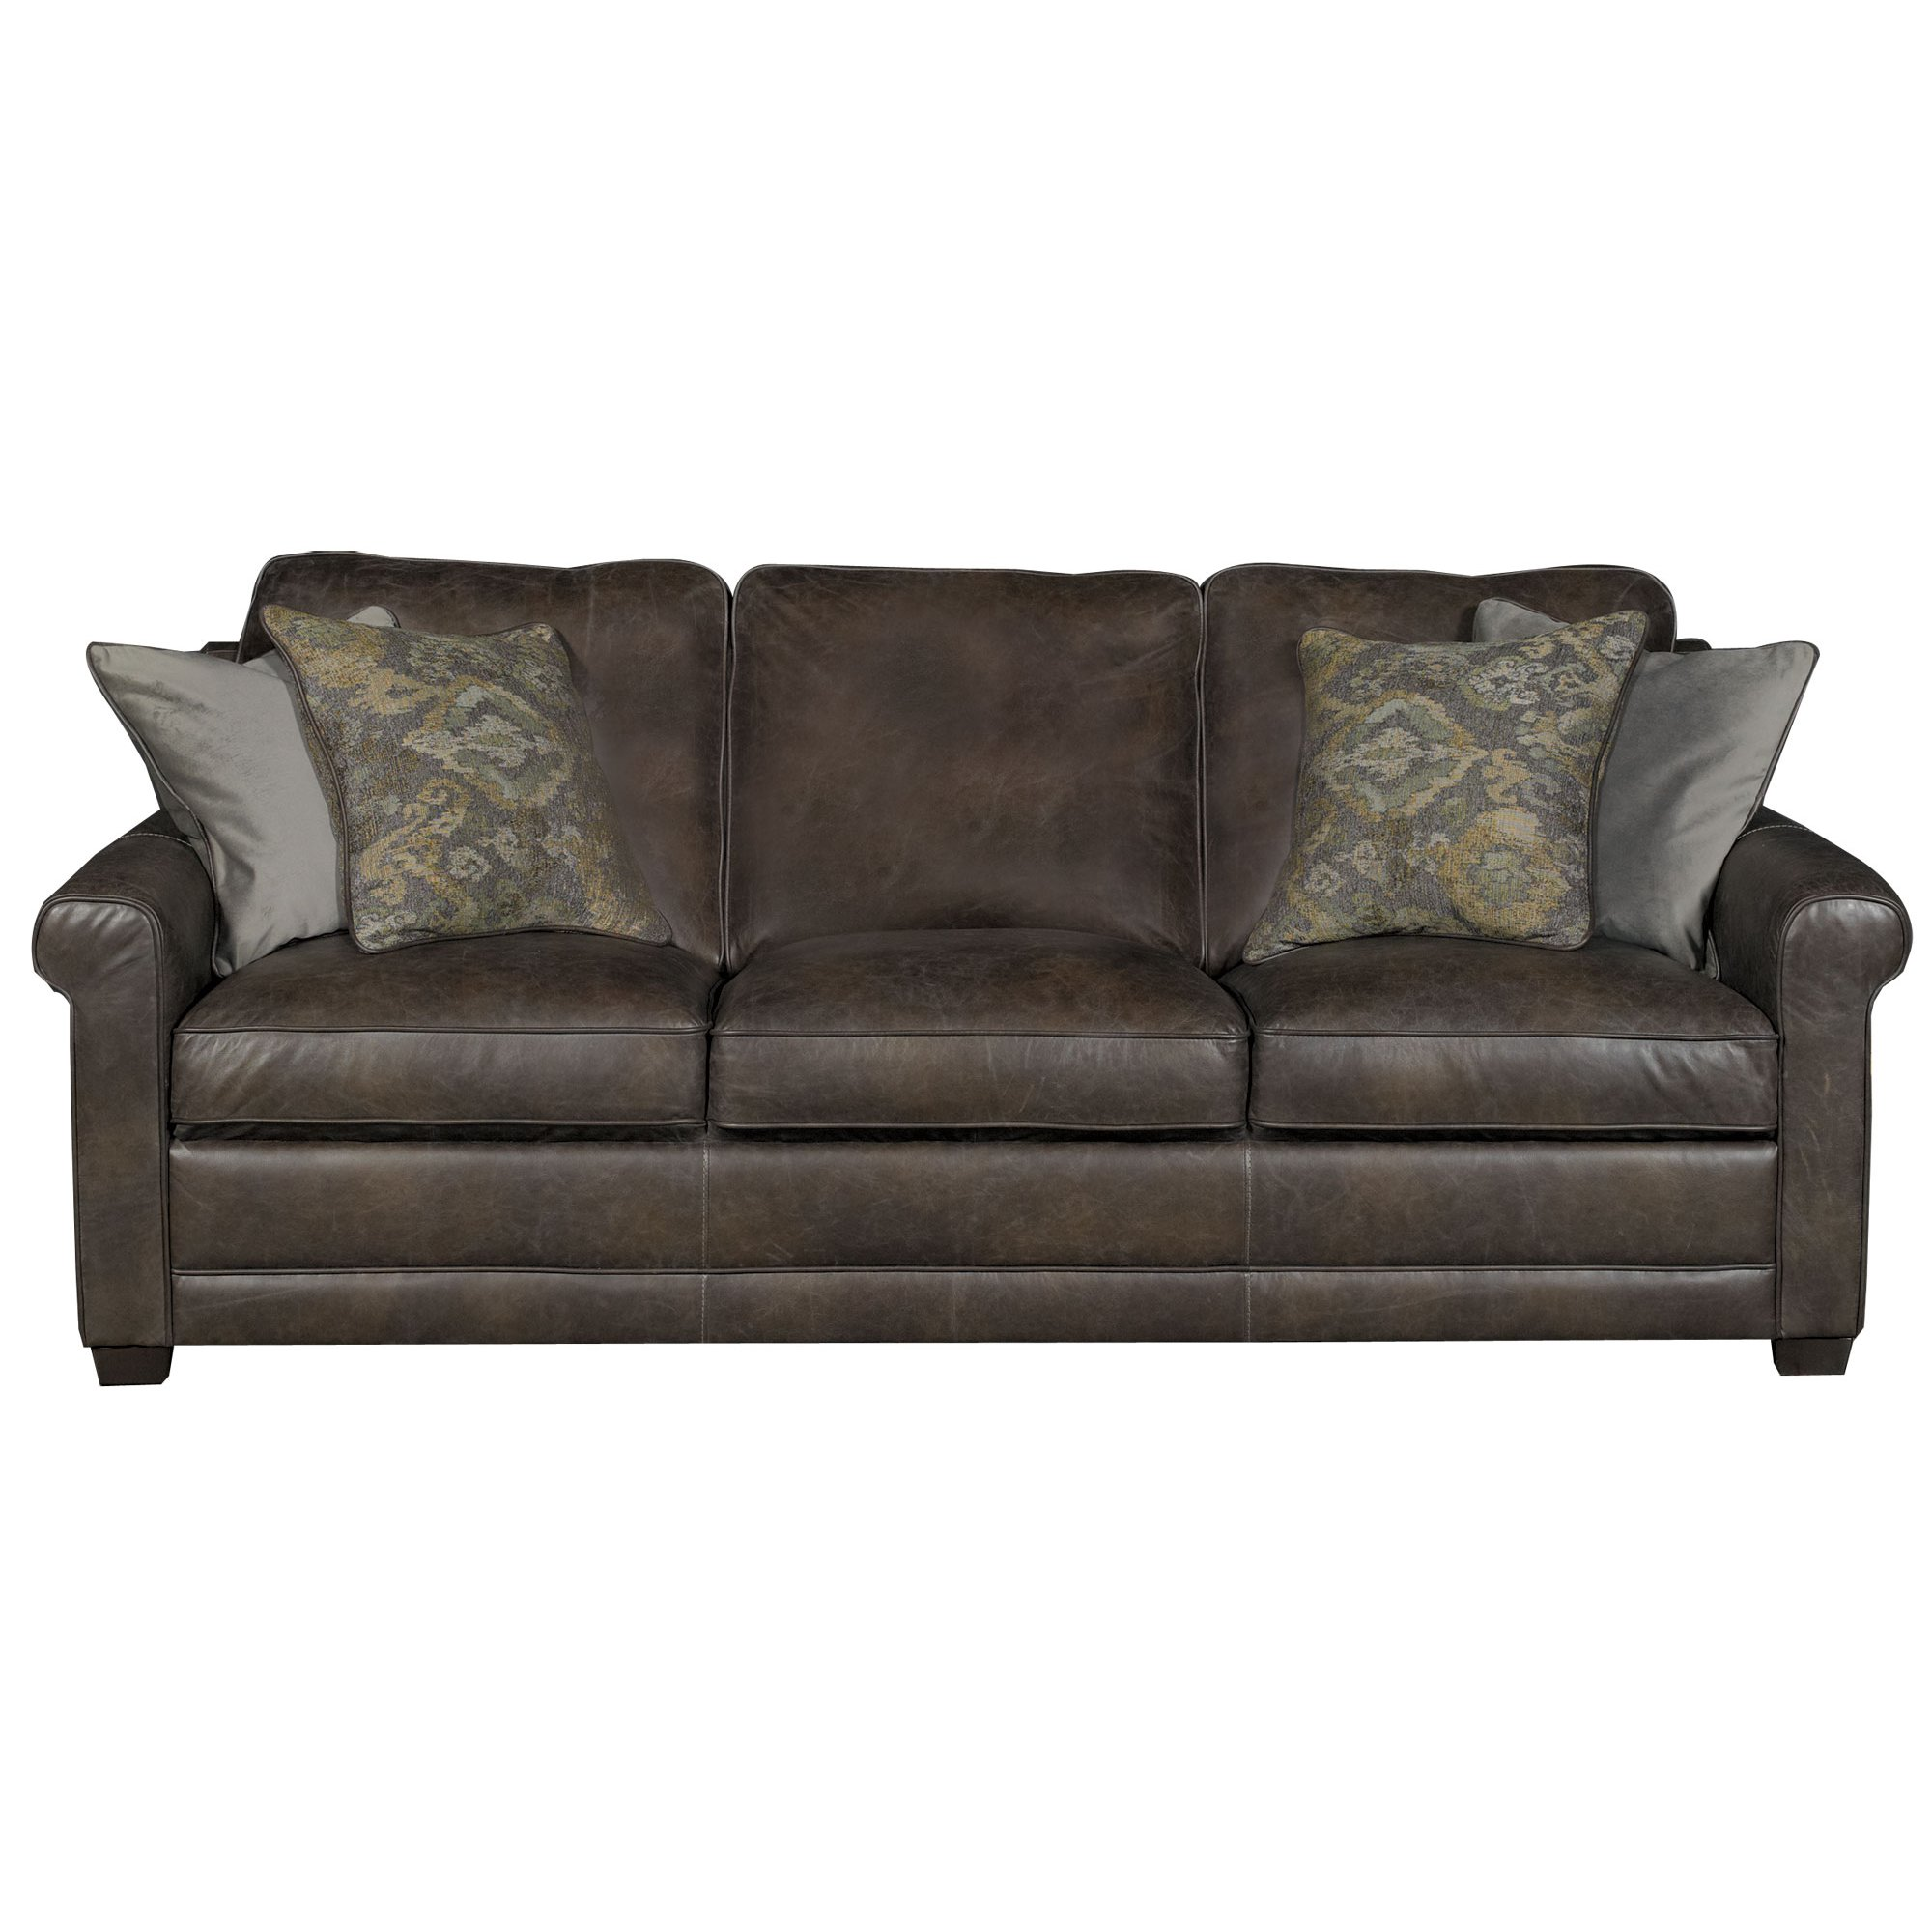 Stone leather sofa kane s furniture sofas and couches for Casual couch